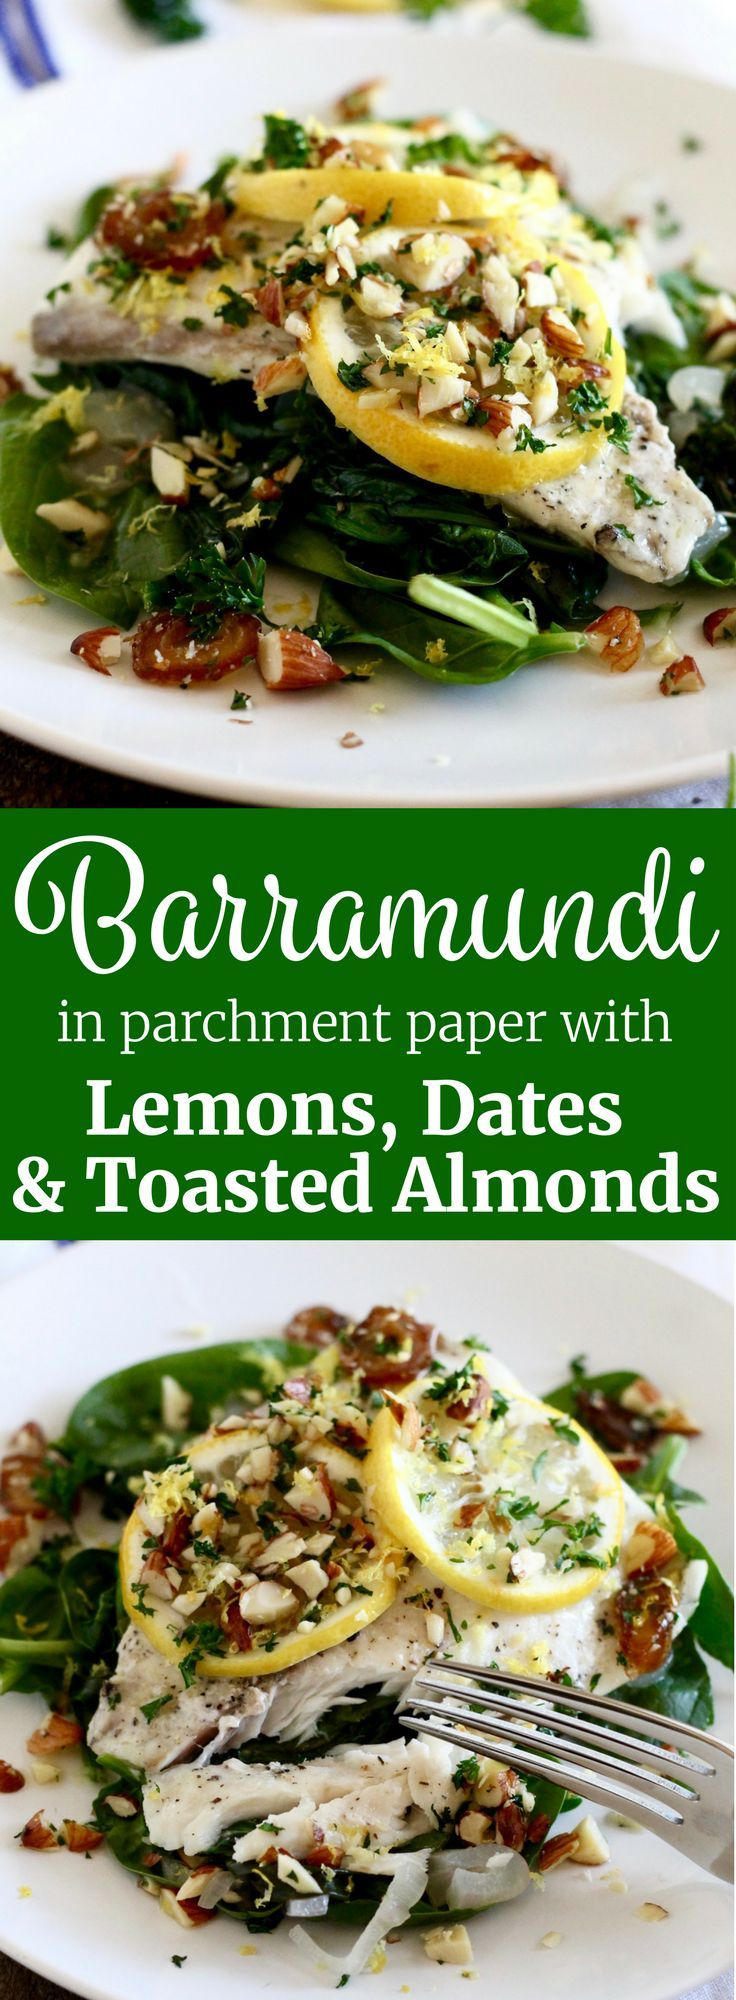 Photo of Barramundi in Parchment with Lemons, Dates & Almonds | Little Chef Big Appetite